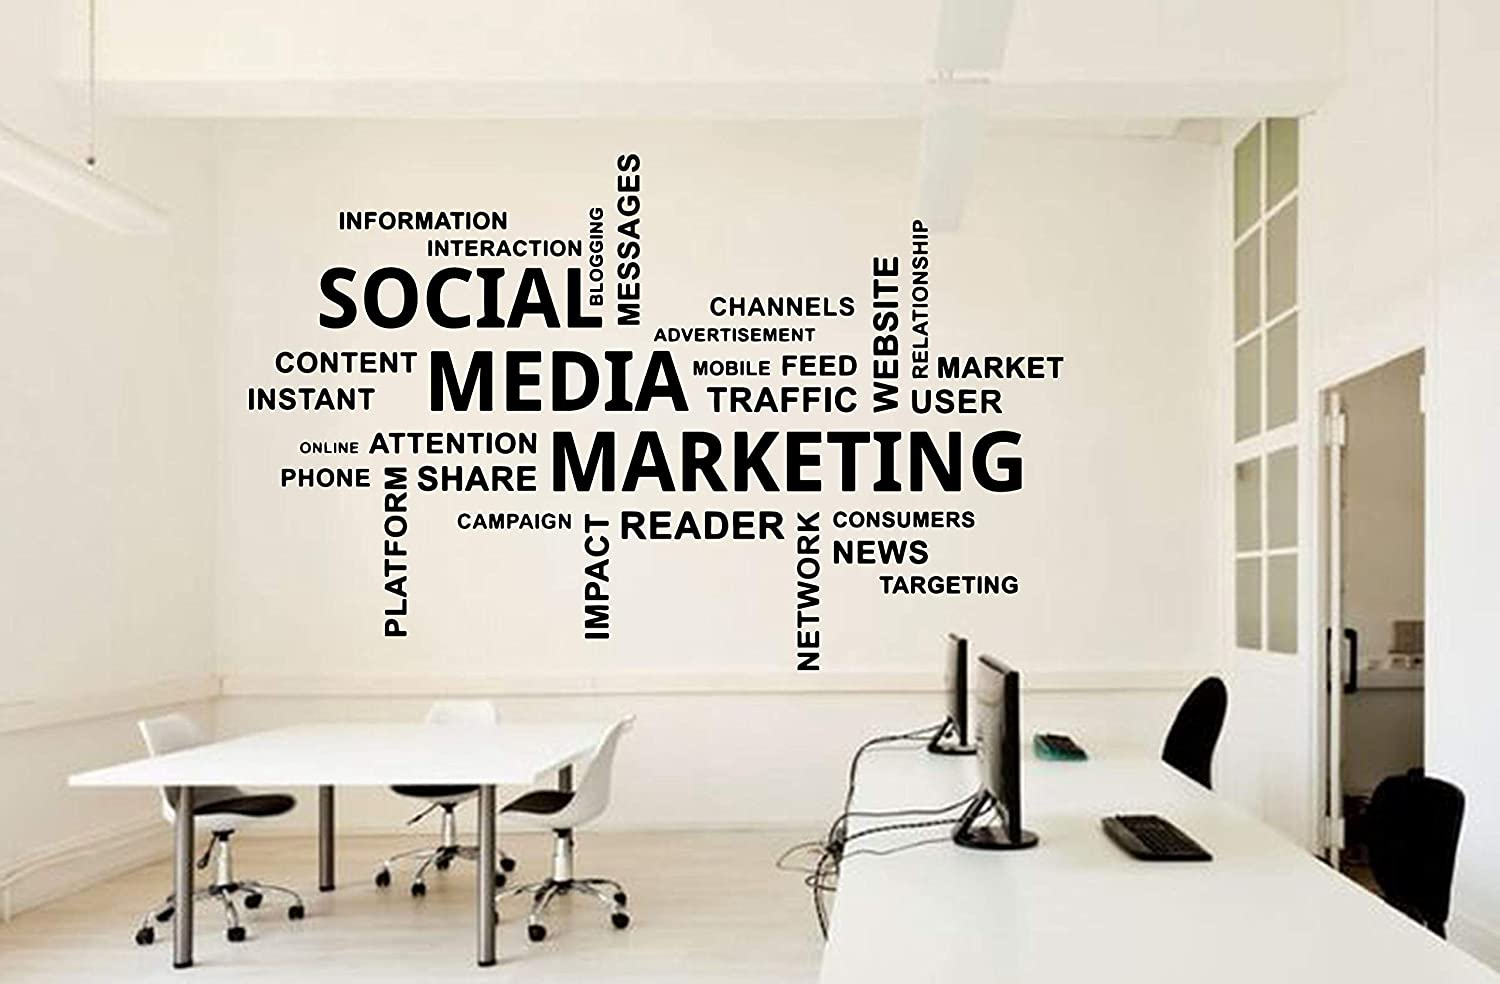 Wall Decal Sticker Office Social Media Marketing Wall Decal Idea Teamwork Business Worker Inspire Office Decoration Motivation Sticker Mural Unique Gift 60 Cm Amazon Co Uk Diy Tools